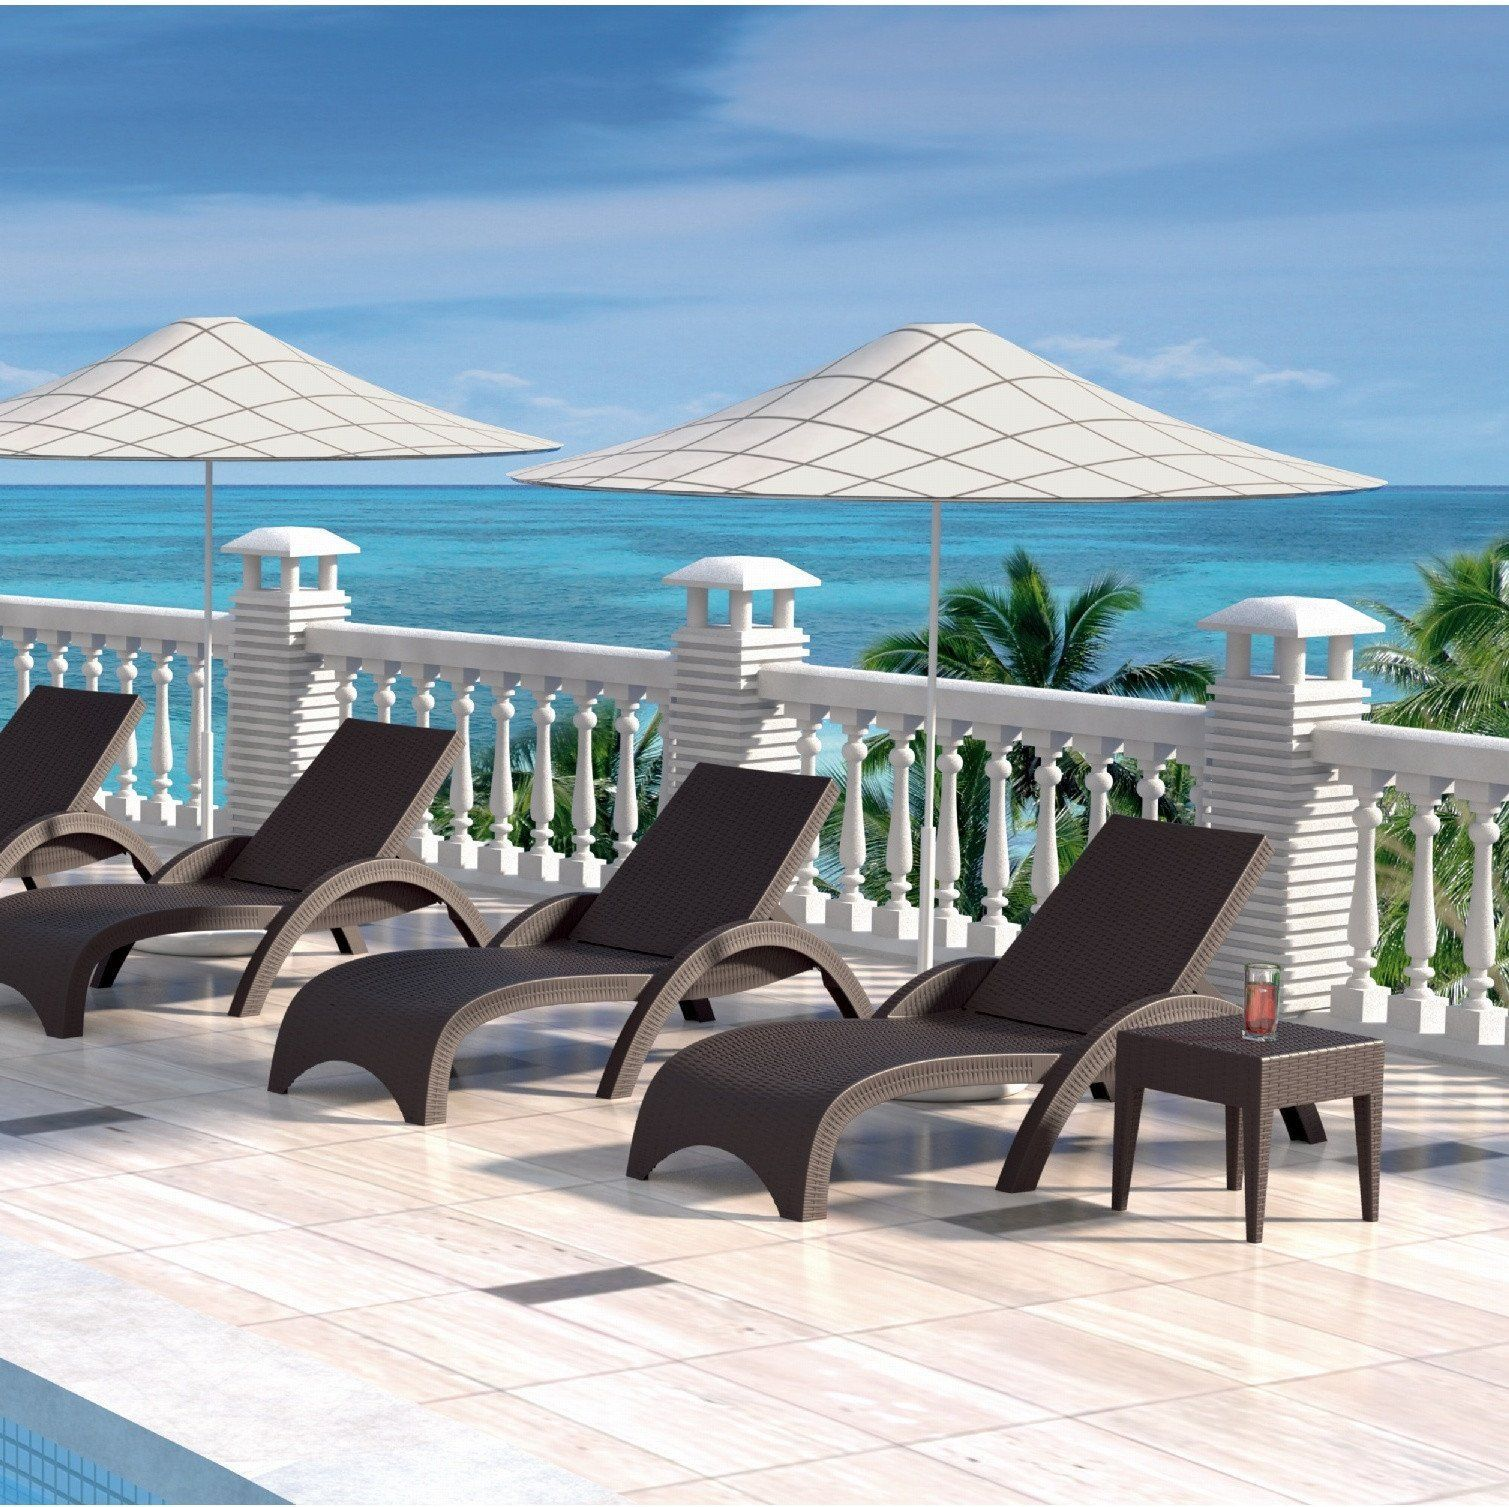 Compamia miami resin wickerlook chaise lounge description compamia miami wickerlook outdoor chaise lounge stackable wickerlook resin is a natural looking